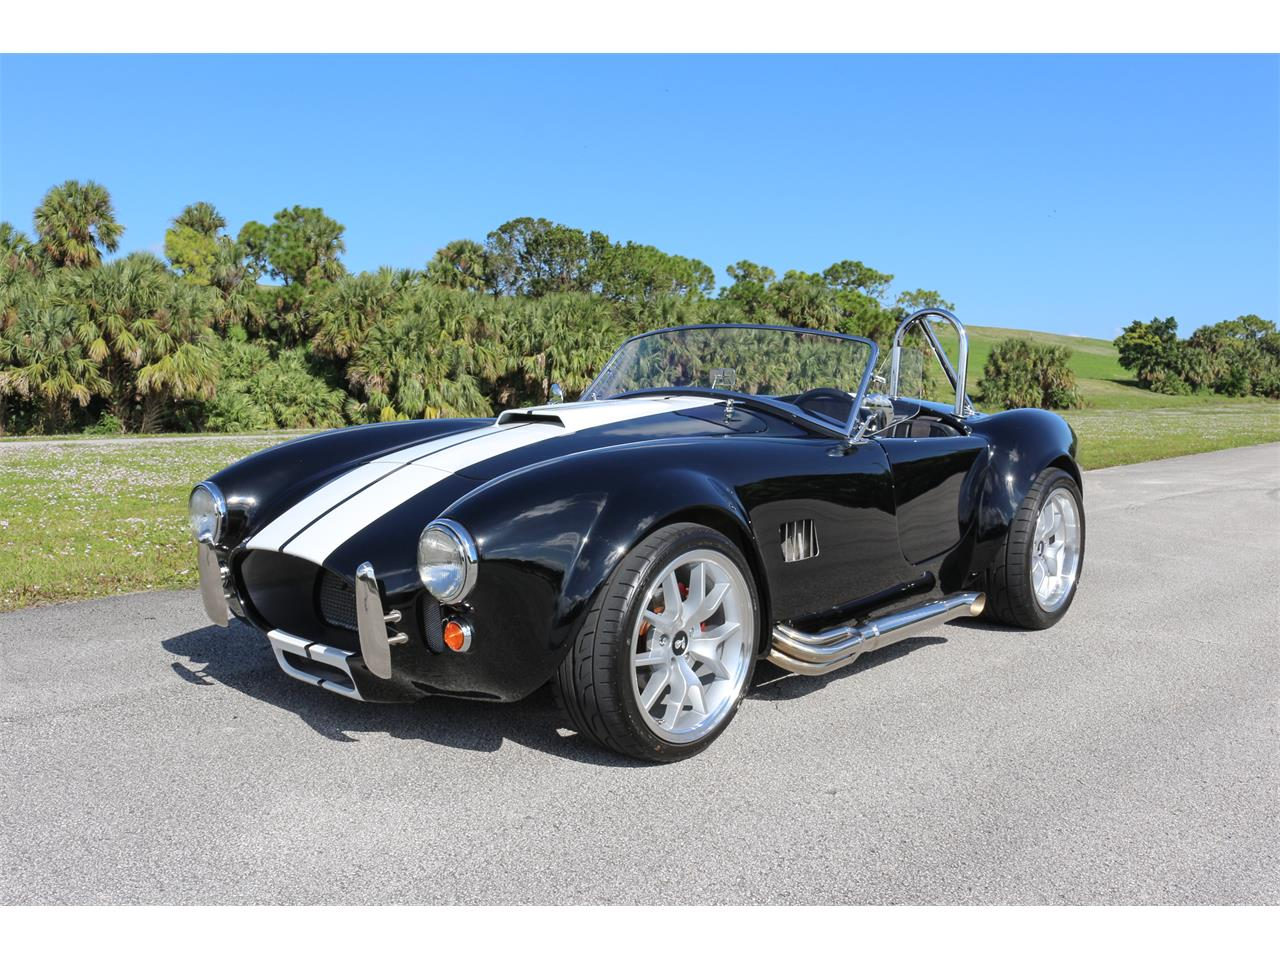 Large Picture of '65 Factory Five Cobra located in Florida - $39,995.00 Offered by a Private Seller - MDPC